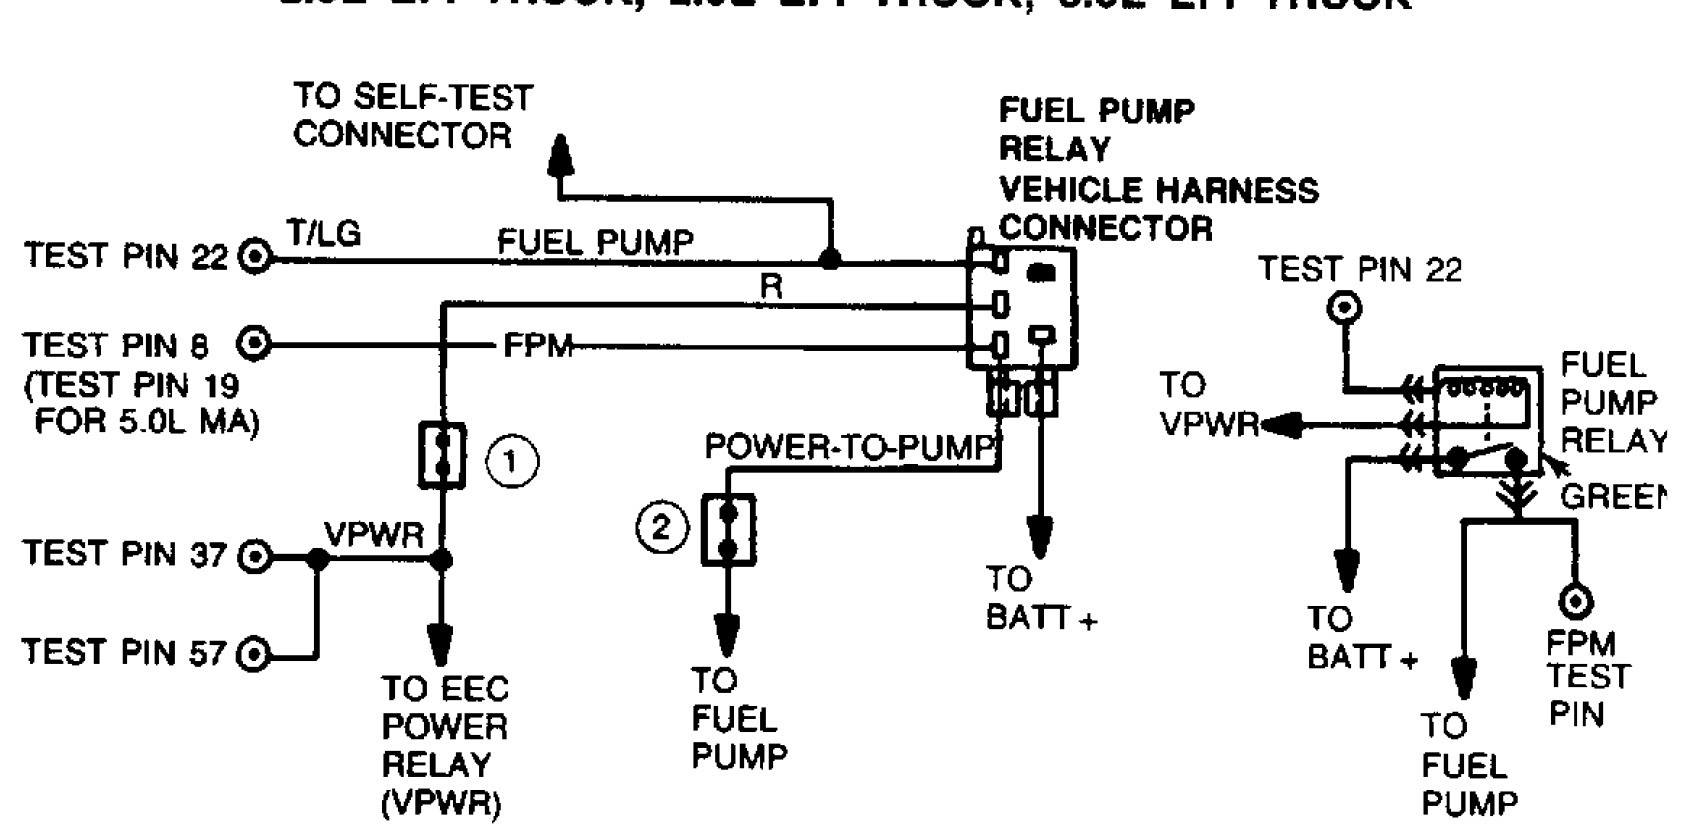 94 Ford F150 Fuel Pump Wiring Diagram | 2002 F150 Fuel Pump Wiring Harness |  | Formula F 1 Results